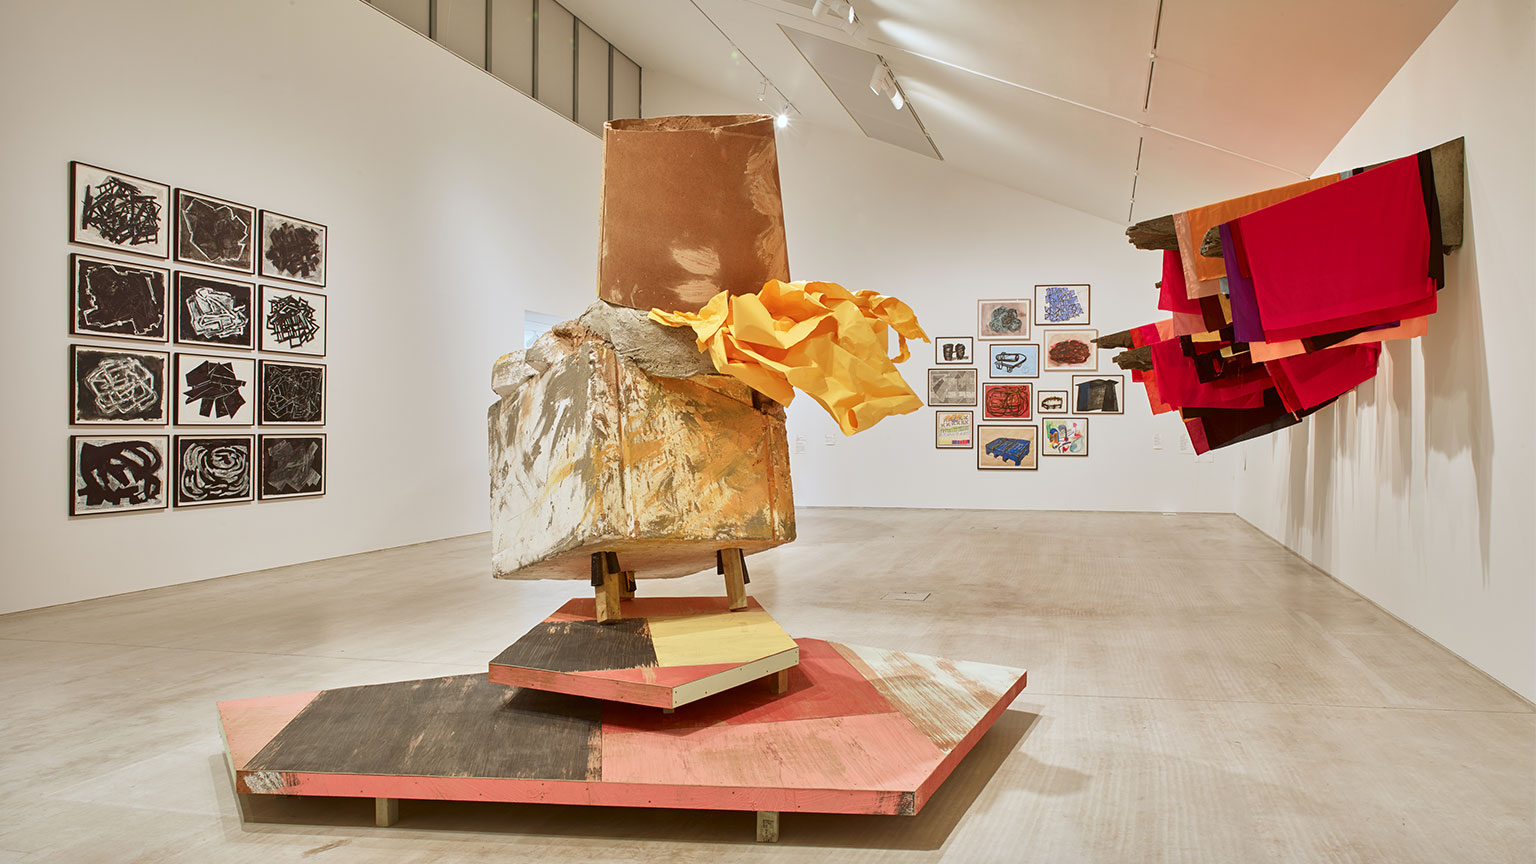 ARTIST ROOMS Phyllida Barlow, installation view, Every Day is a New Day.